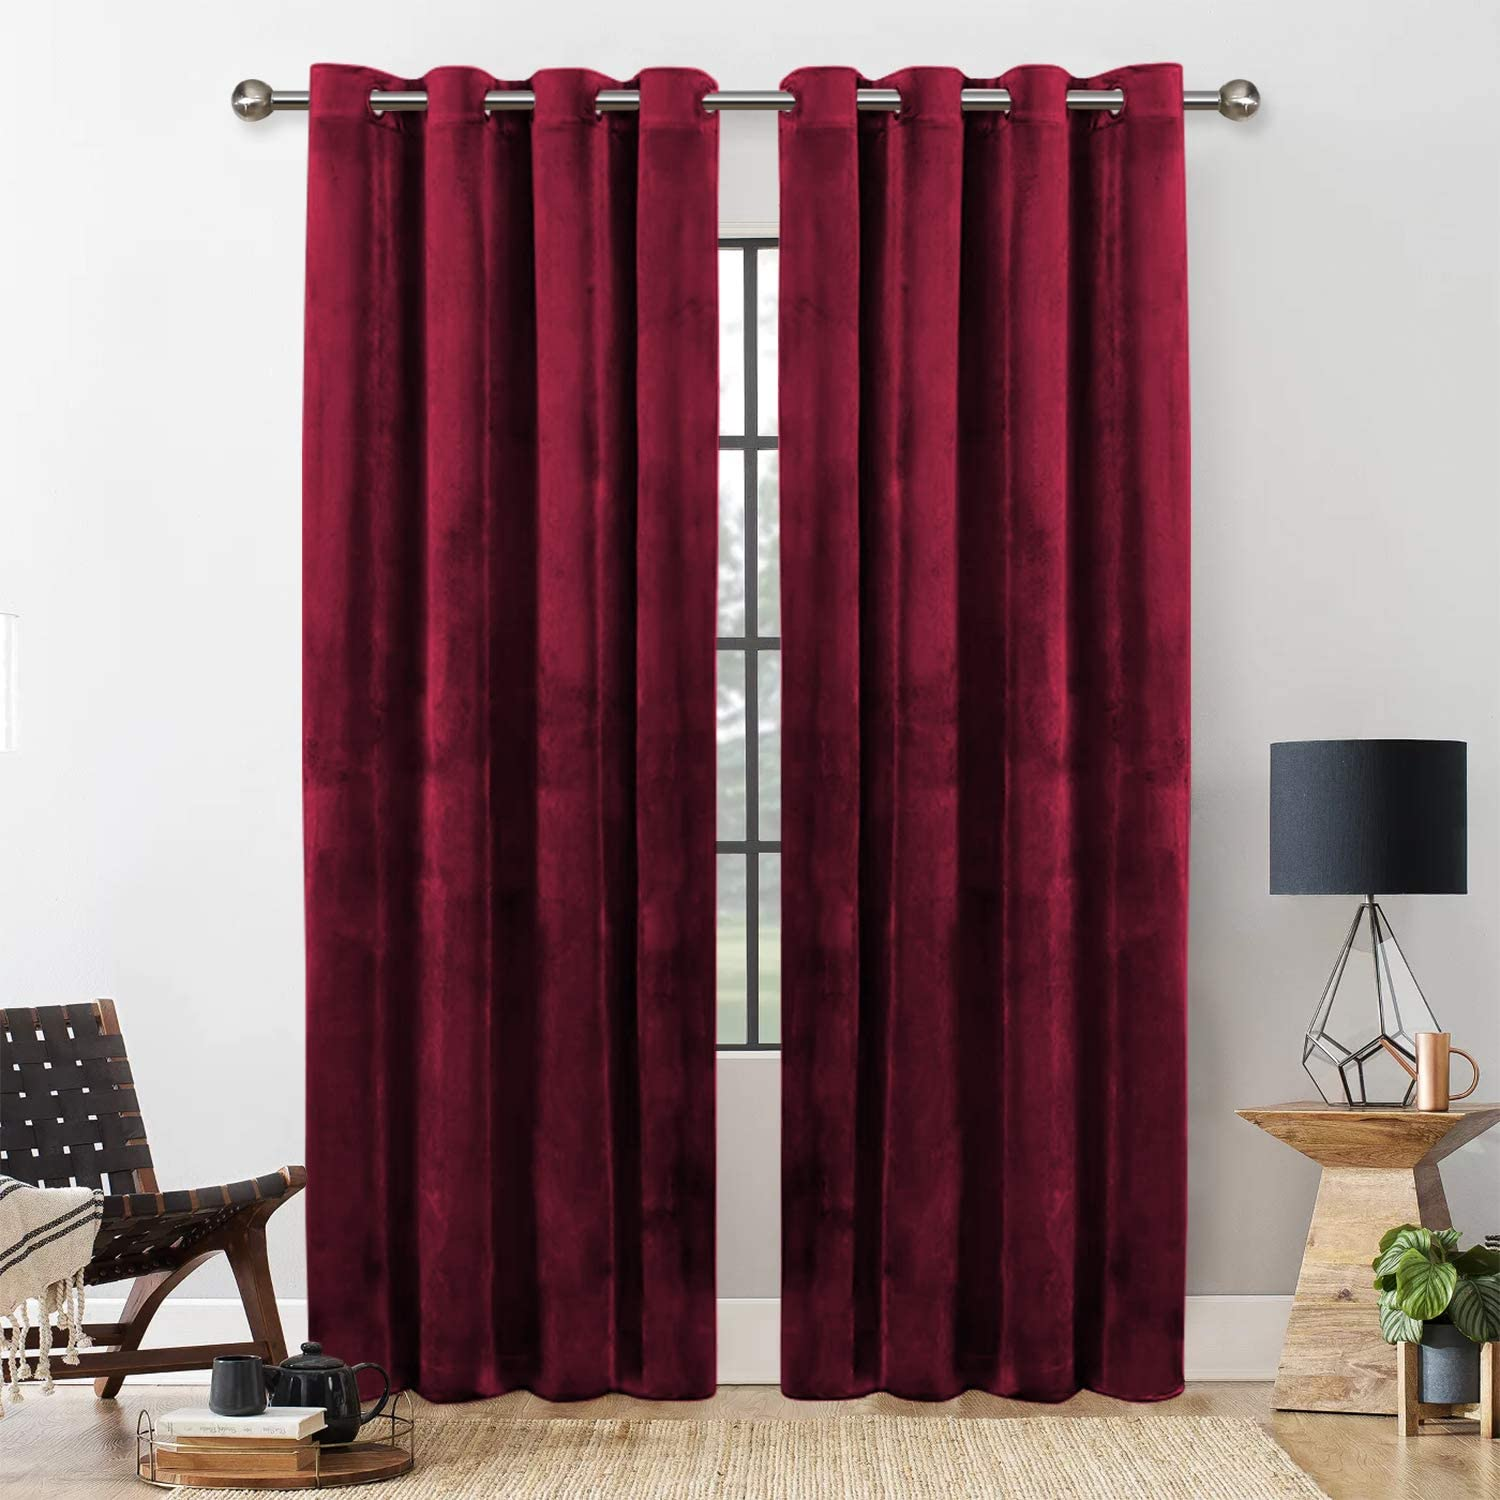 Yorkshire Bedding Blackout Curtain 54 Drop Eyelet Room Darkening Burgundy Crushed Velvet Curtains For Bedroom Decor Fully Lined Window Curtains Tie Backs 116cm X 137cm Amazon Co Uk Kitchen Home